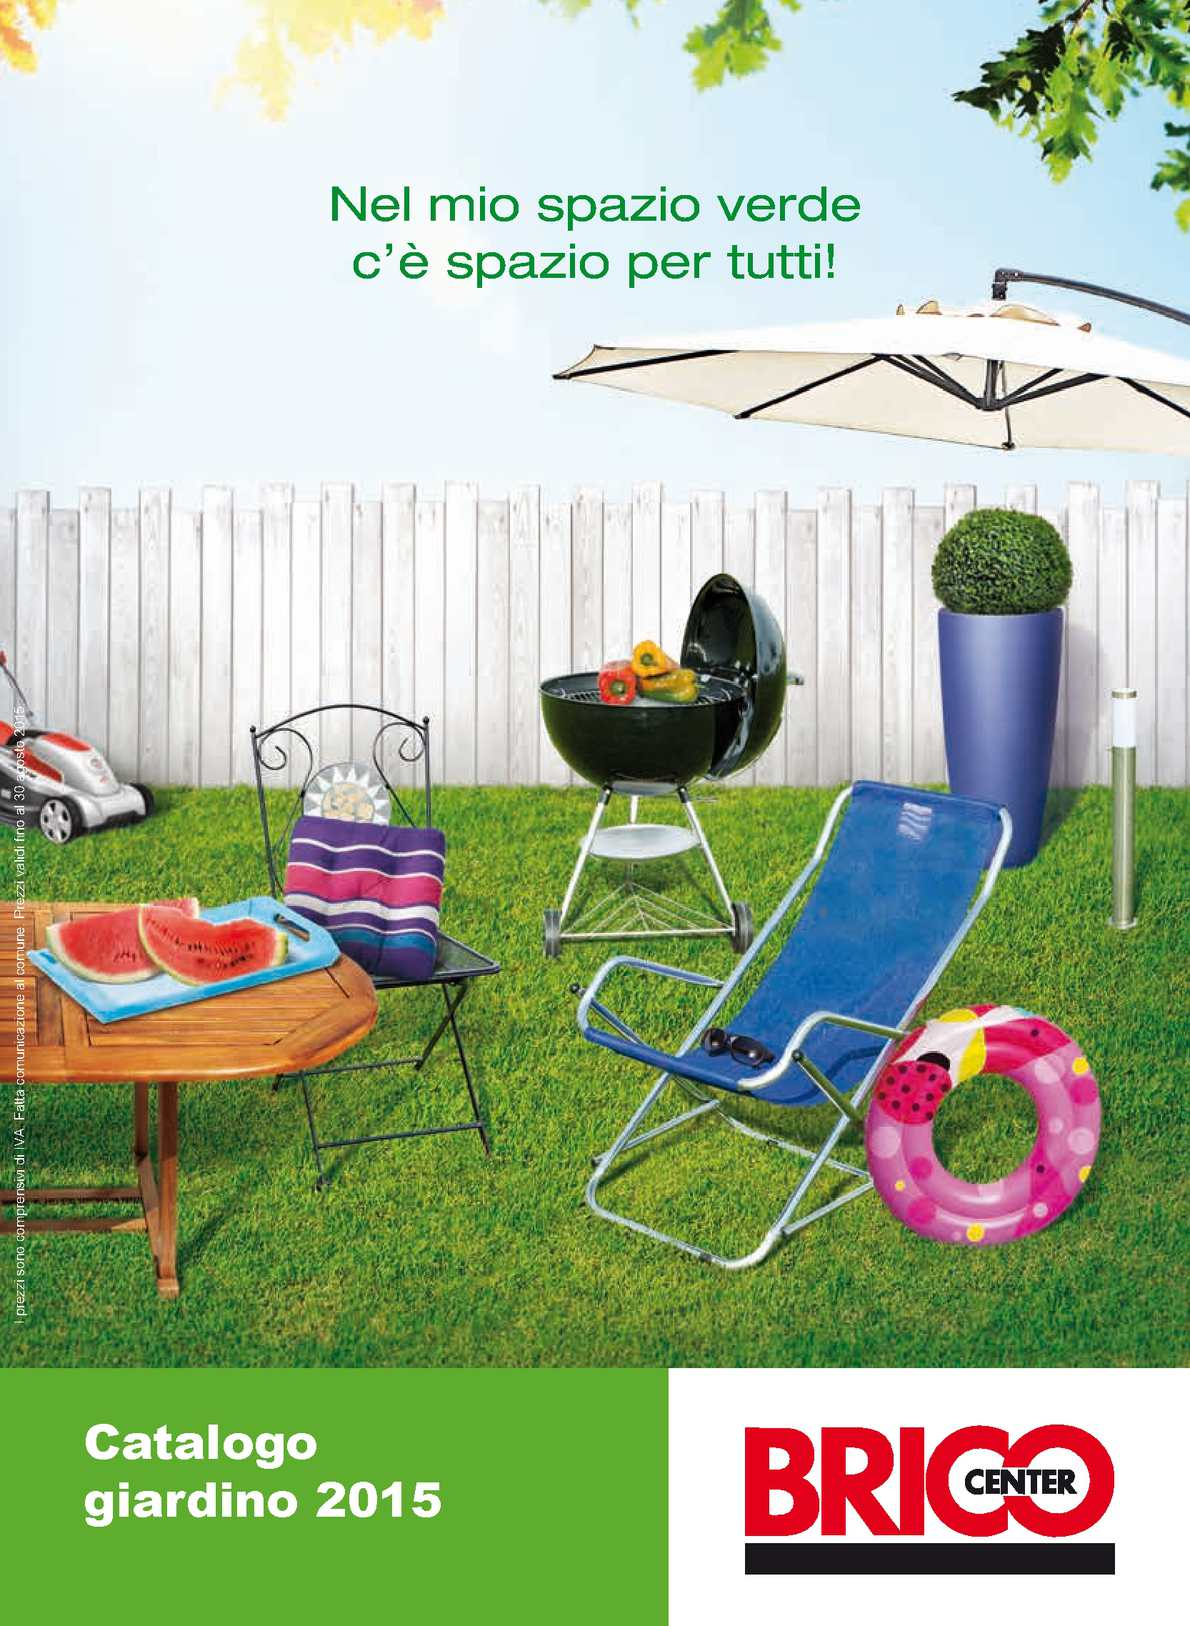 Calam o catalogo bricocenter giardino 2015 for Catalogo giardino